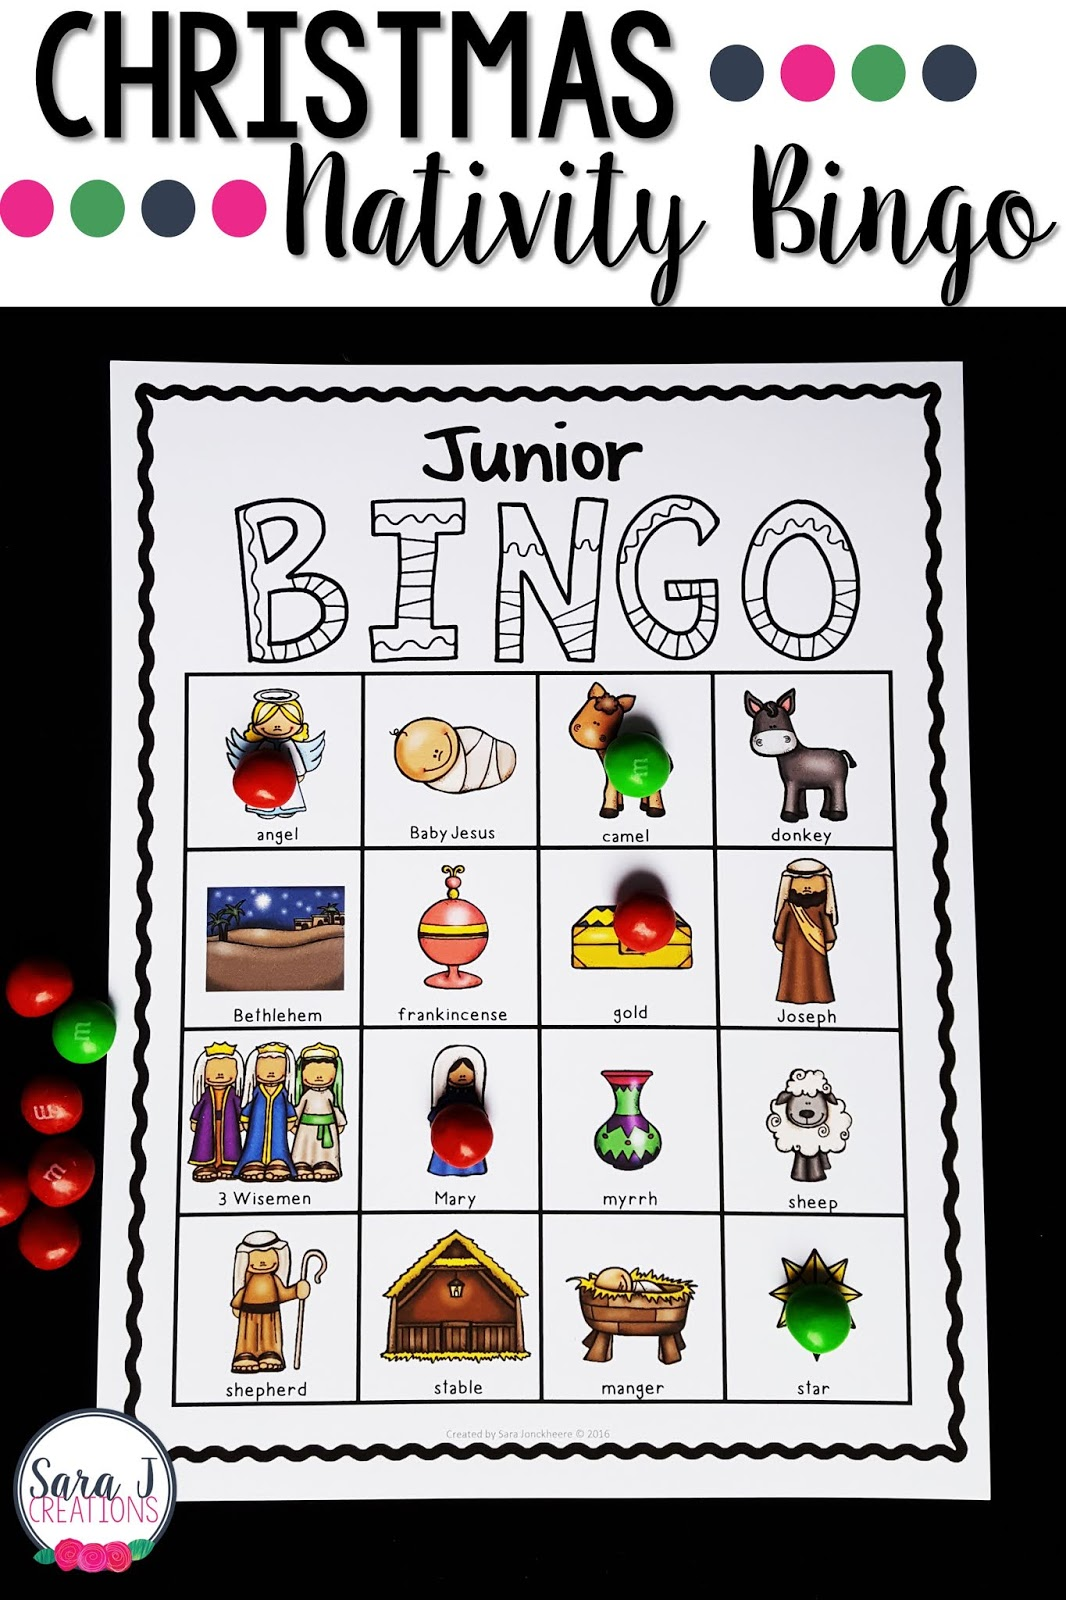 Looking for a more religious spin on Christmas Bingo? Check out Christmas Nativity bingo and practice the vocabulary for the birth of Jesus and that first Christmas all those years ago.